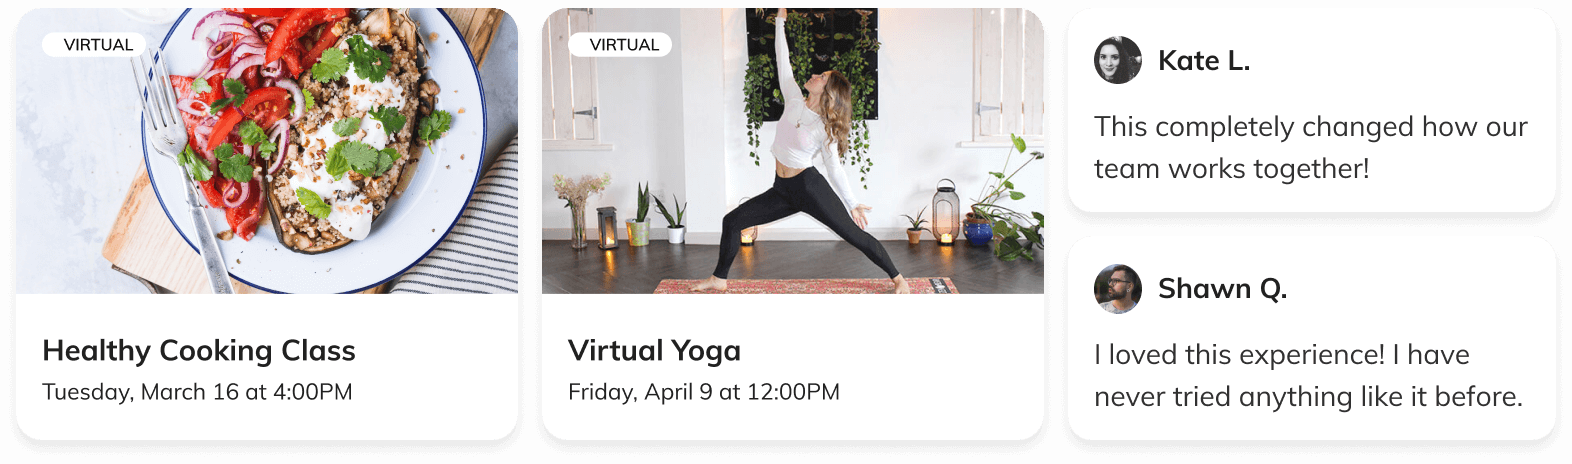 healthy cooking classes and virtual yoga experiences on the Thriver platform with employee feedback